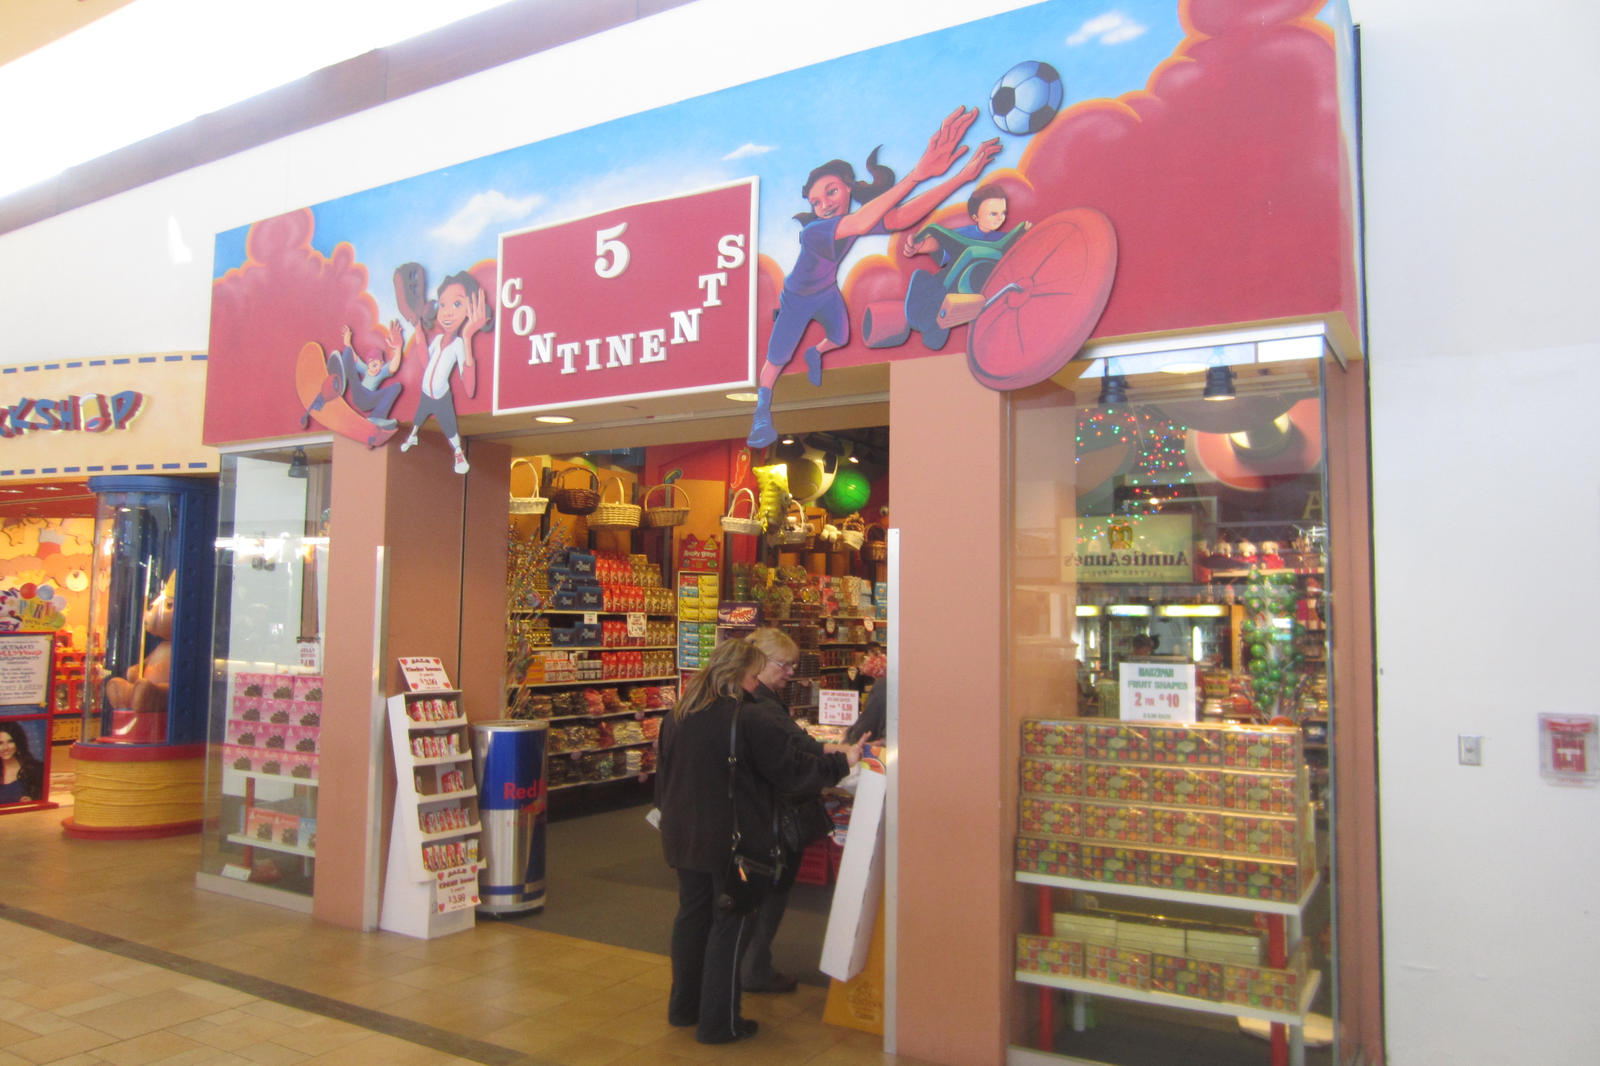 5 Continents Candy Store by MetalGriffen69 5 Continents Candy Store by  MetalGriffen69. 5 Continents Candy Store by MetalGriffen69 on DeviantArt